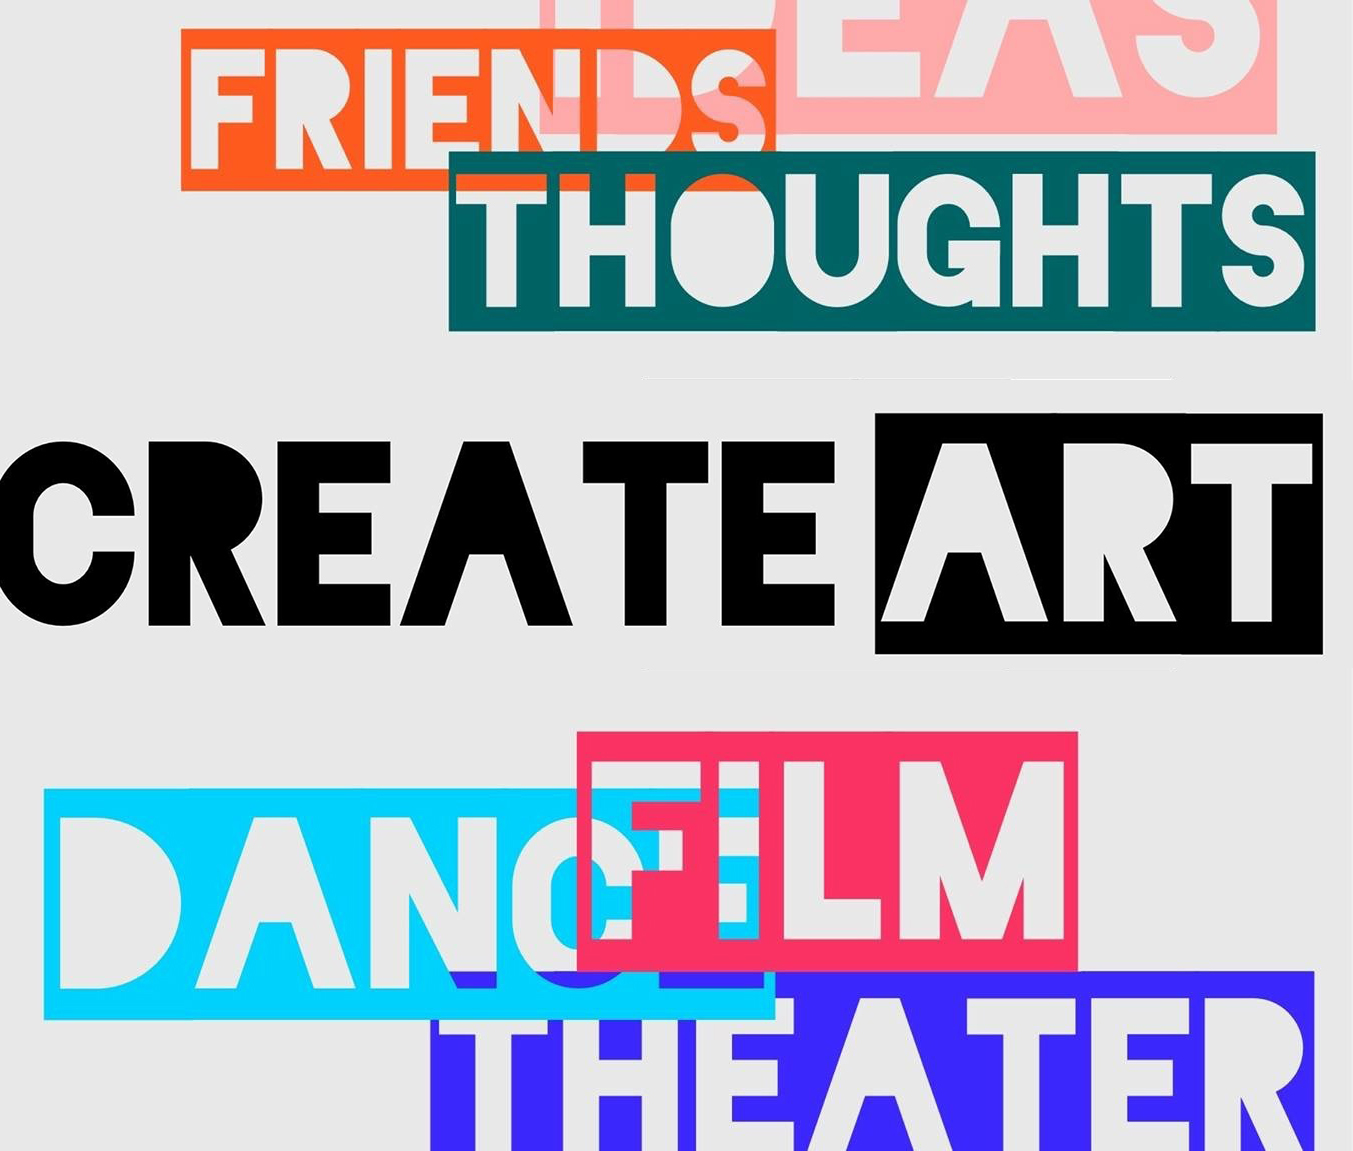 CREATE:ART - PERFORMANCE EVENT & PARTYSat, June 1, 7pm-12 @ Last Frontier NYCCurated by Georgia Usborne & Nicole Von Arx$15 tickets in advance, $20 on the door.Food will be servedFILM: Charlotte Bydwell, Jeffery Docimo, Jeff Schick, Elena Vazintaris, Winnie CheungDANCE: Keerati Jinakunwiphut, Garrett Parker, NVA & Guests, Hannah Wendel, Doron Perk, Chelsea AinsworthSPOKEN WORD/DANCE: Paul Rabinowitz & Debbie MacielLATE NIGHT MUSIC/INSTALLATION: Voyager Collective, Animal Feelings